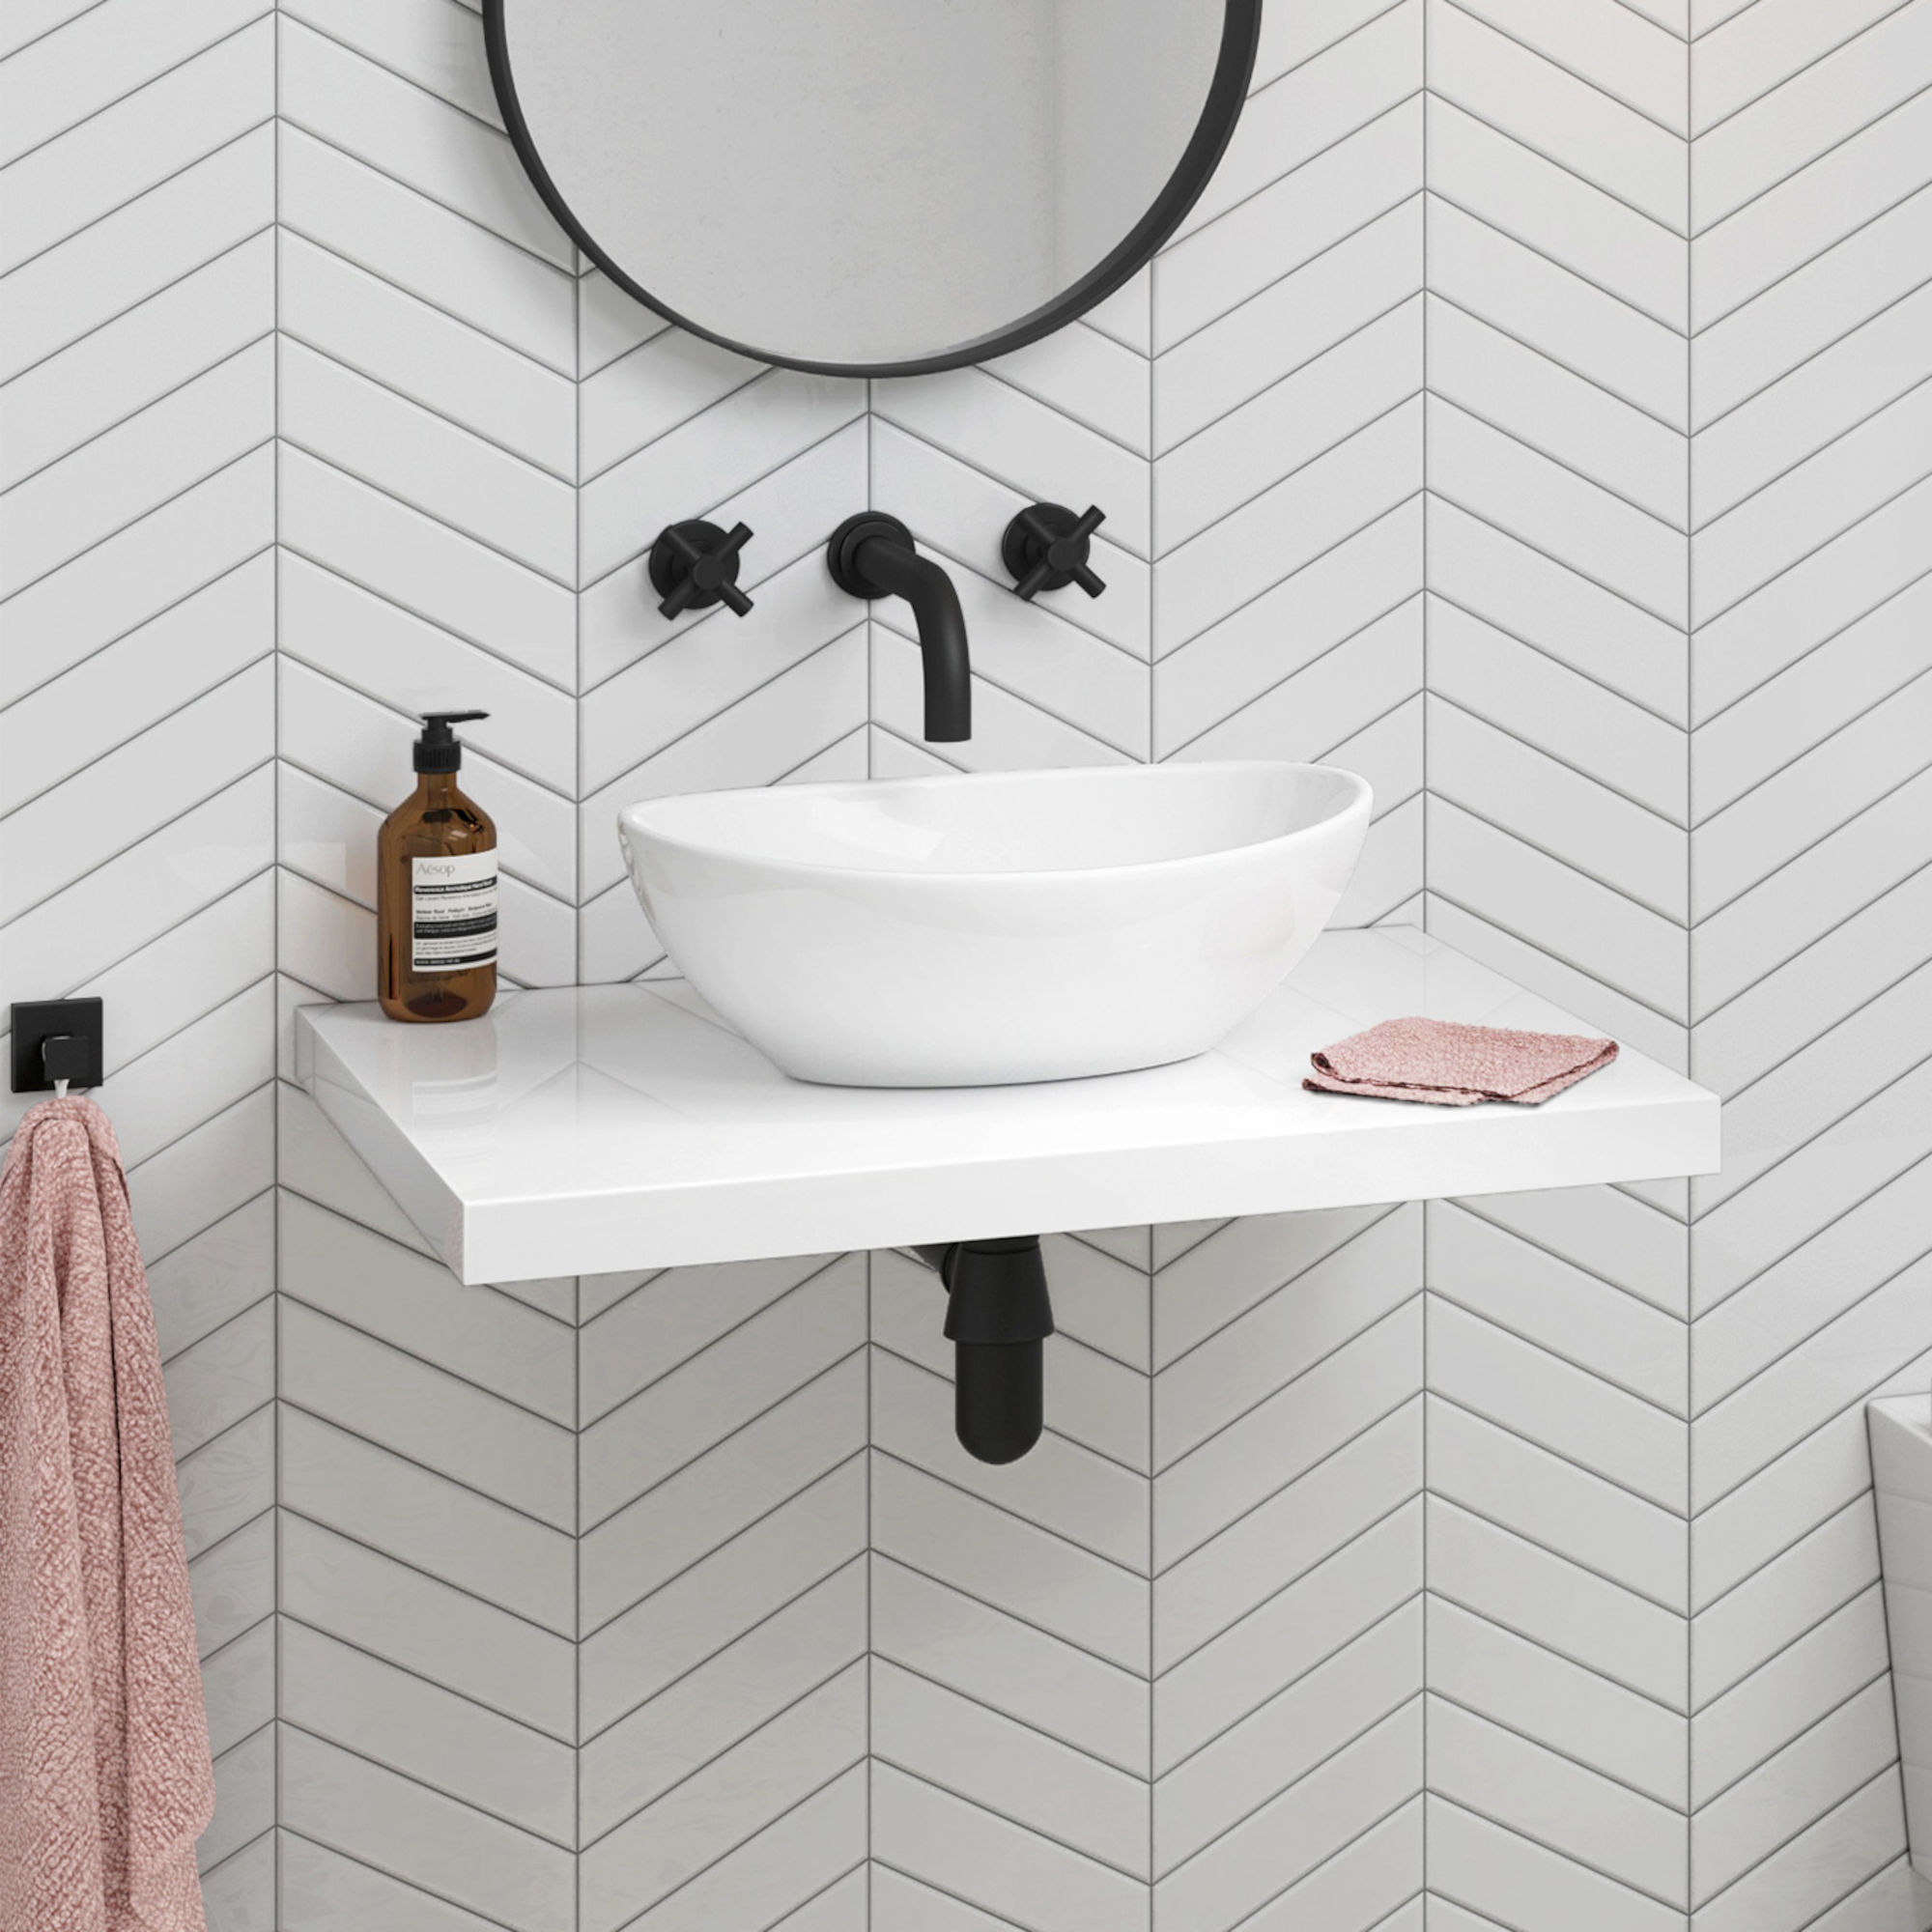 our new floating bathroom sinks for contemporary soak fscamhgw basin shelf gloss white wall hung countertop camila floor standing shelving unit mounted clothes rail with foot ikea